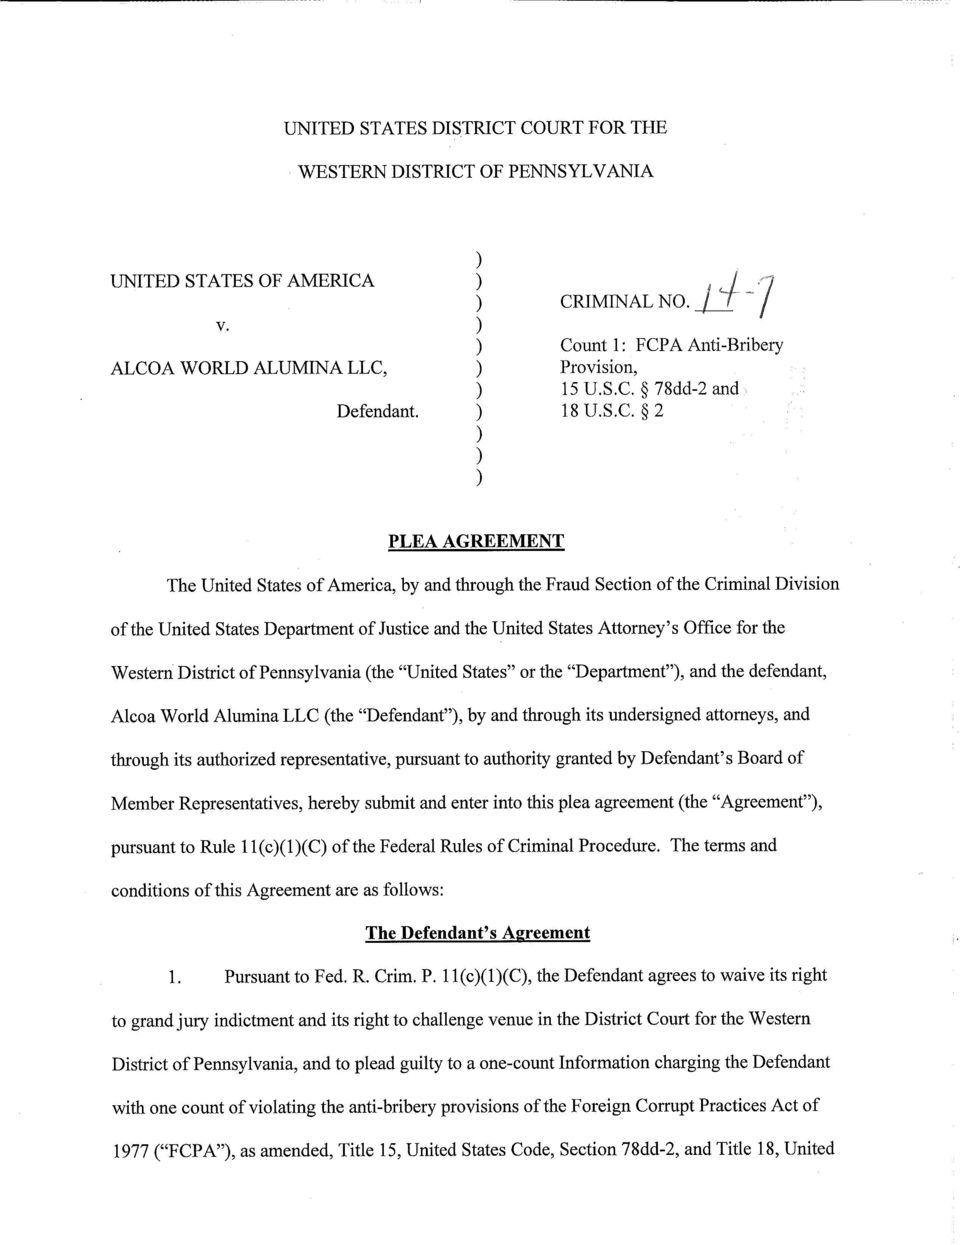 "the District of Pennsylvania (the ""United States"" or the ""Department""), and the defendant, Alcoa World Alumina LLC (the ""Defendant""), by and through its undersigned attorneys, and through its"